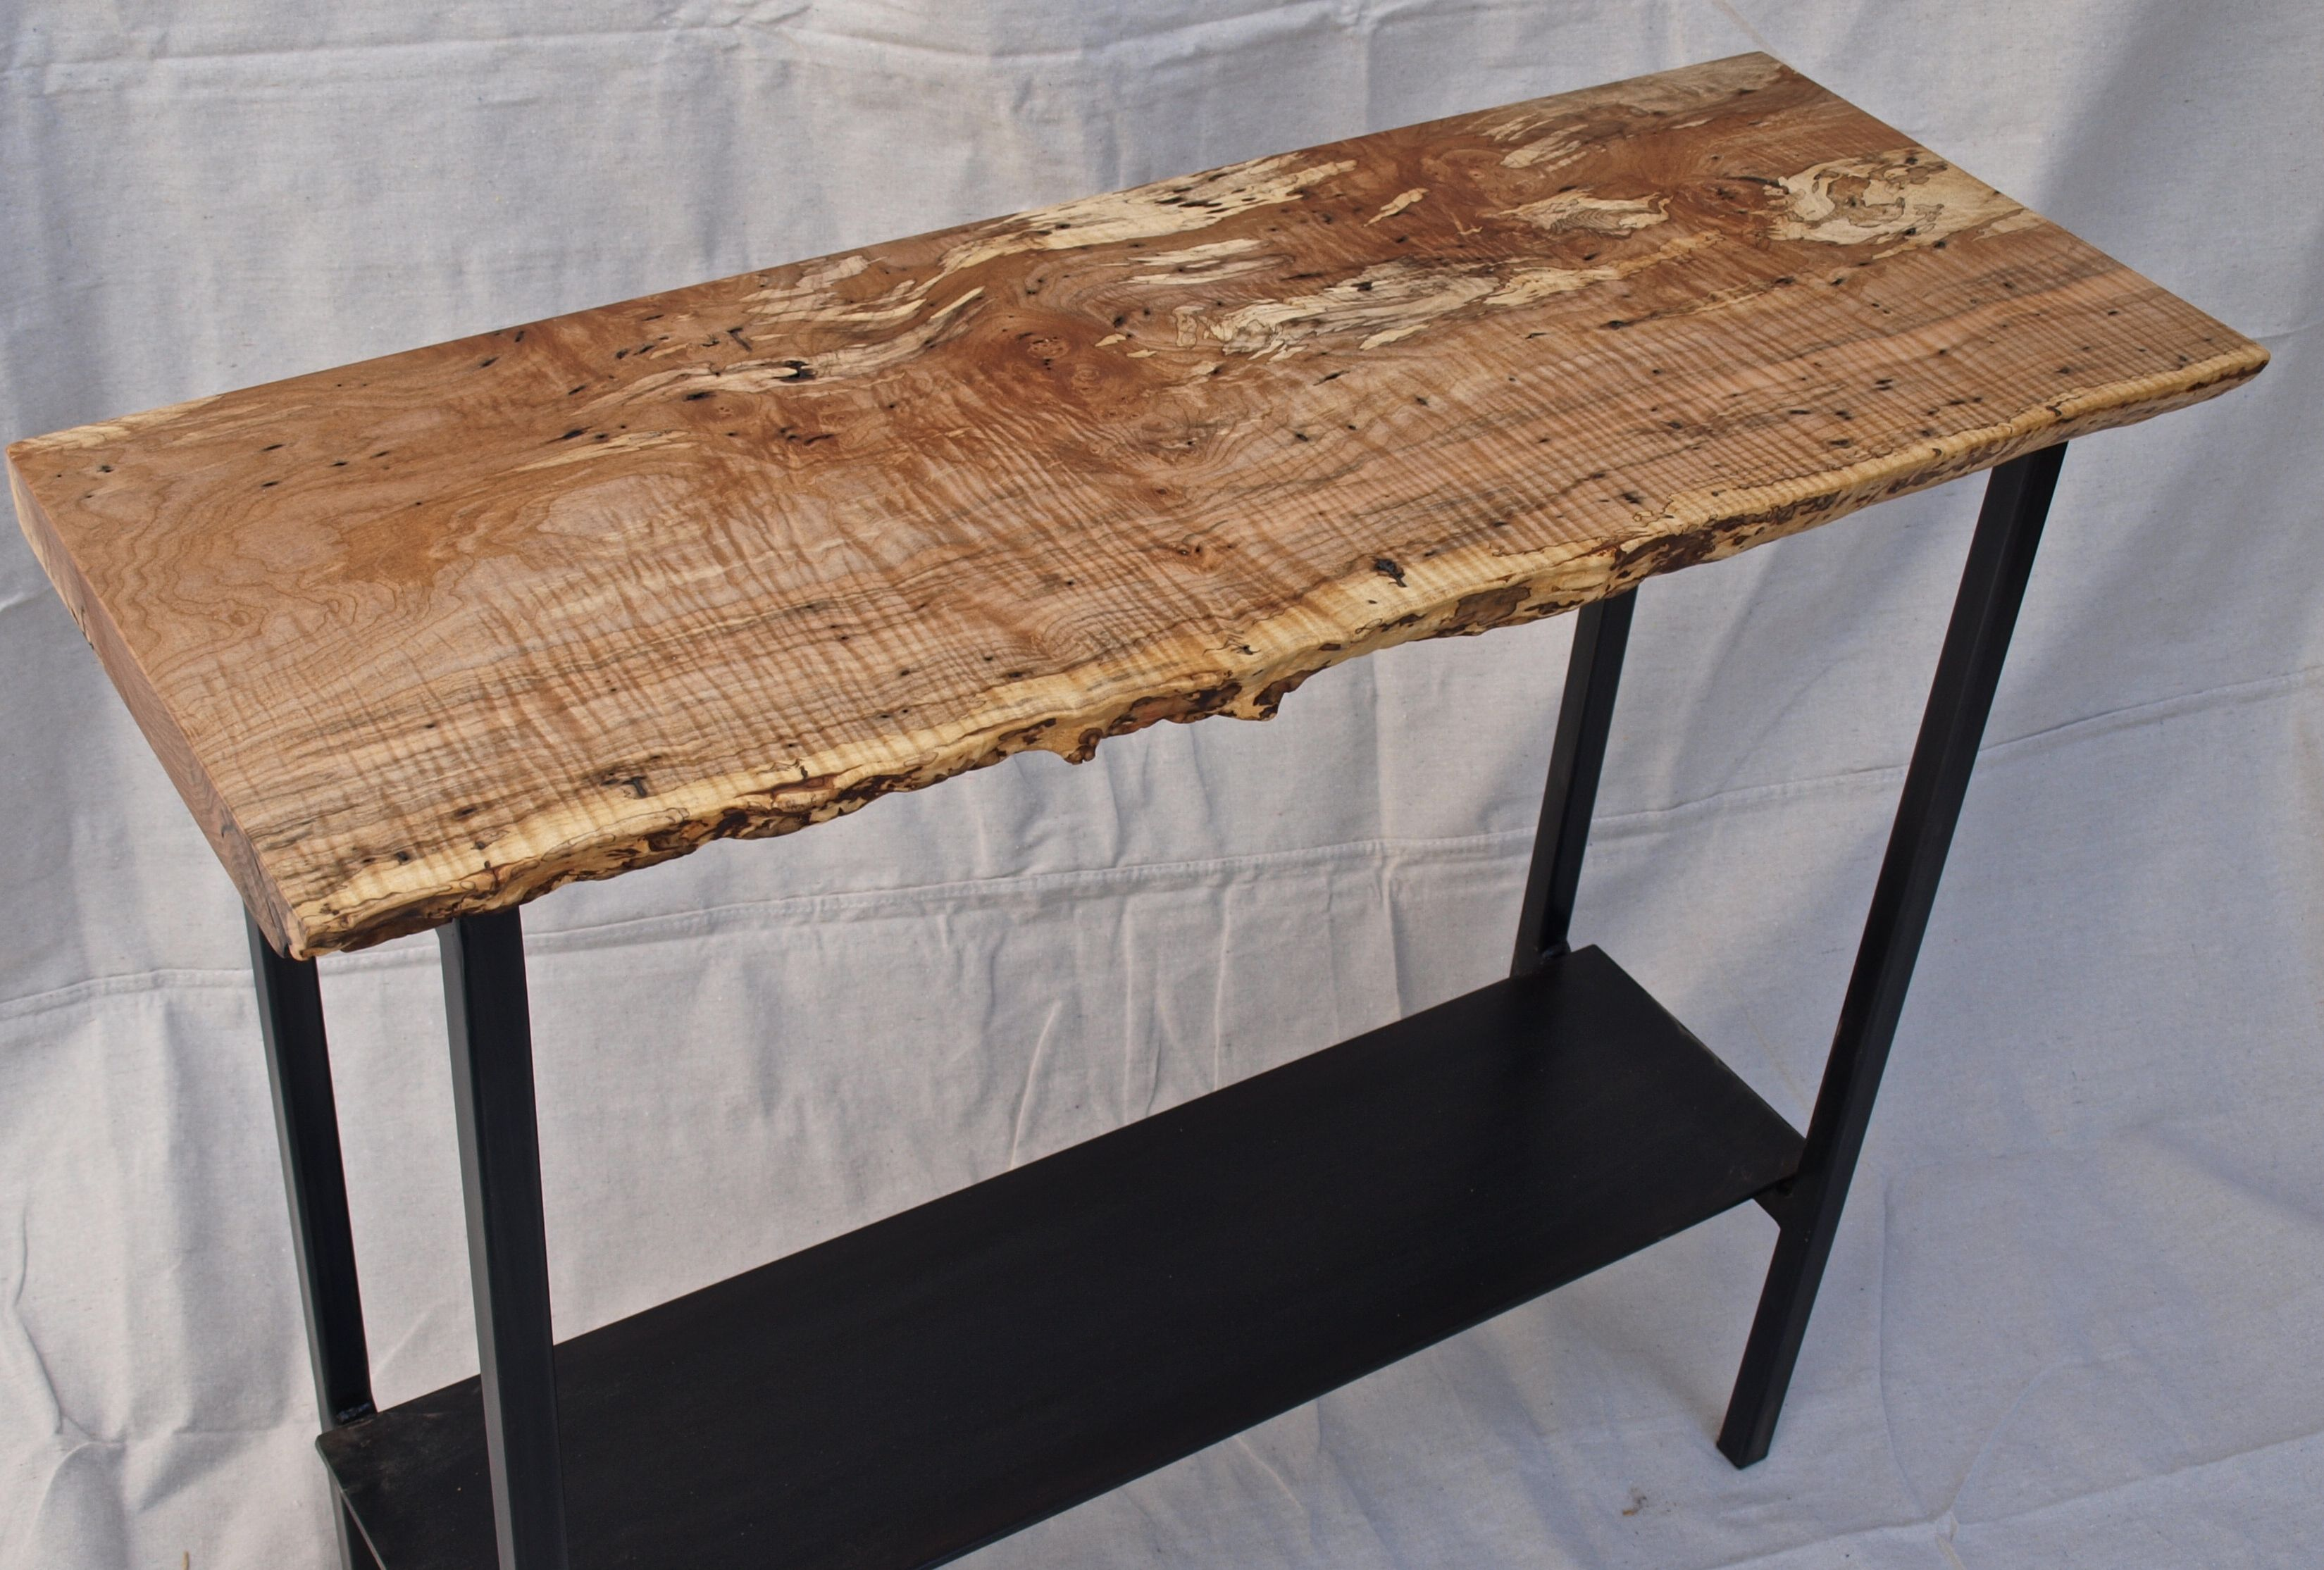 Hand crafted live edge maple console table by witness tree studios custom made live edge maple console table geotapseo Image collections